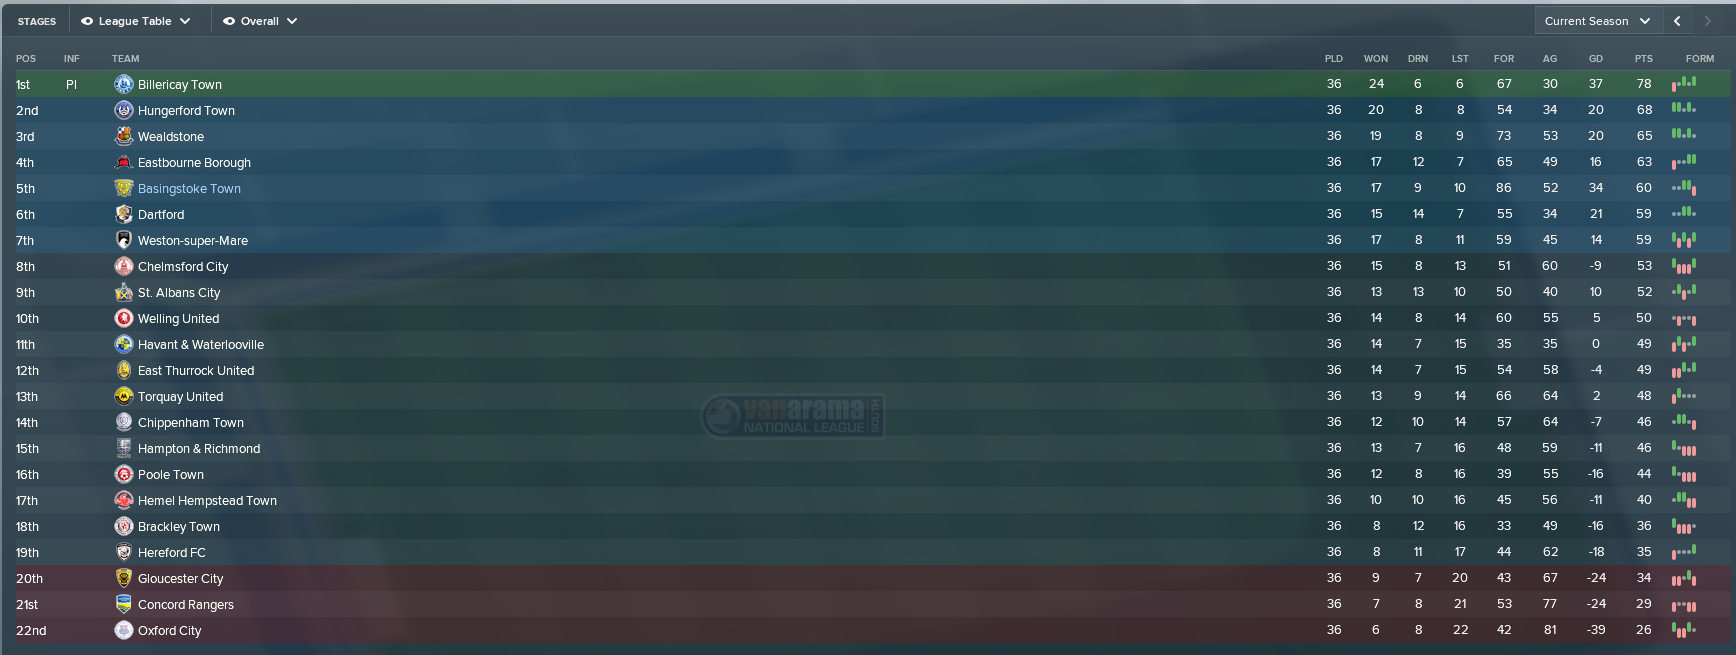 march_league_table.png